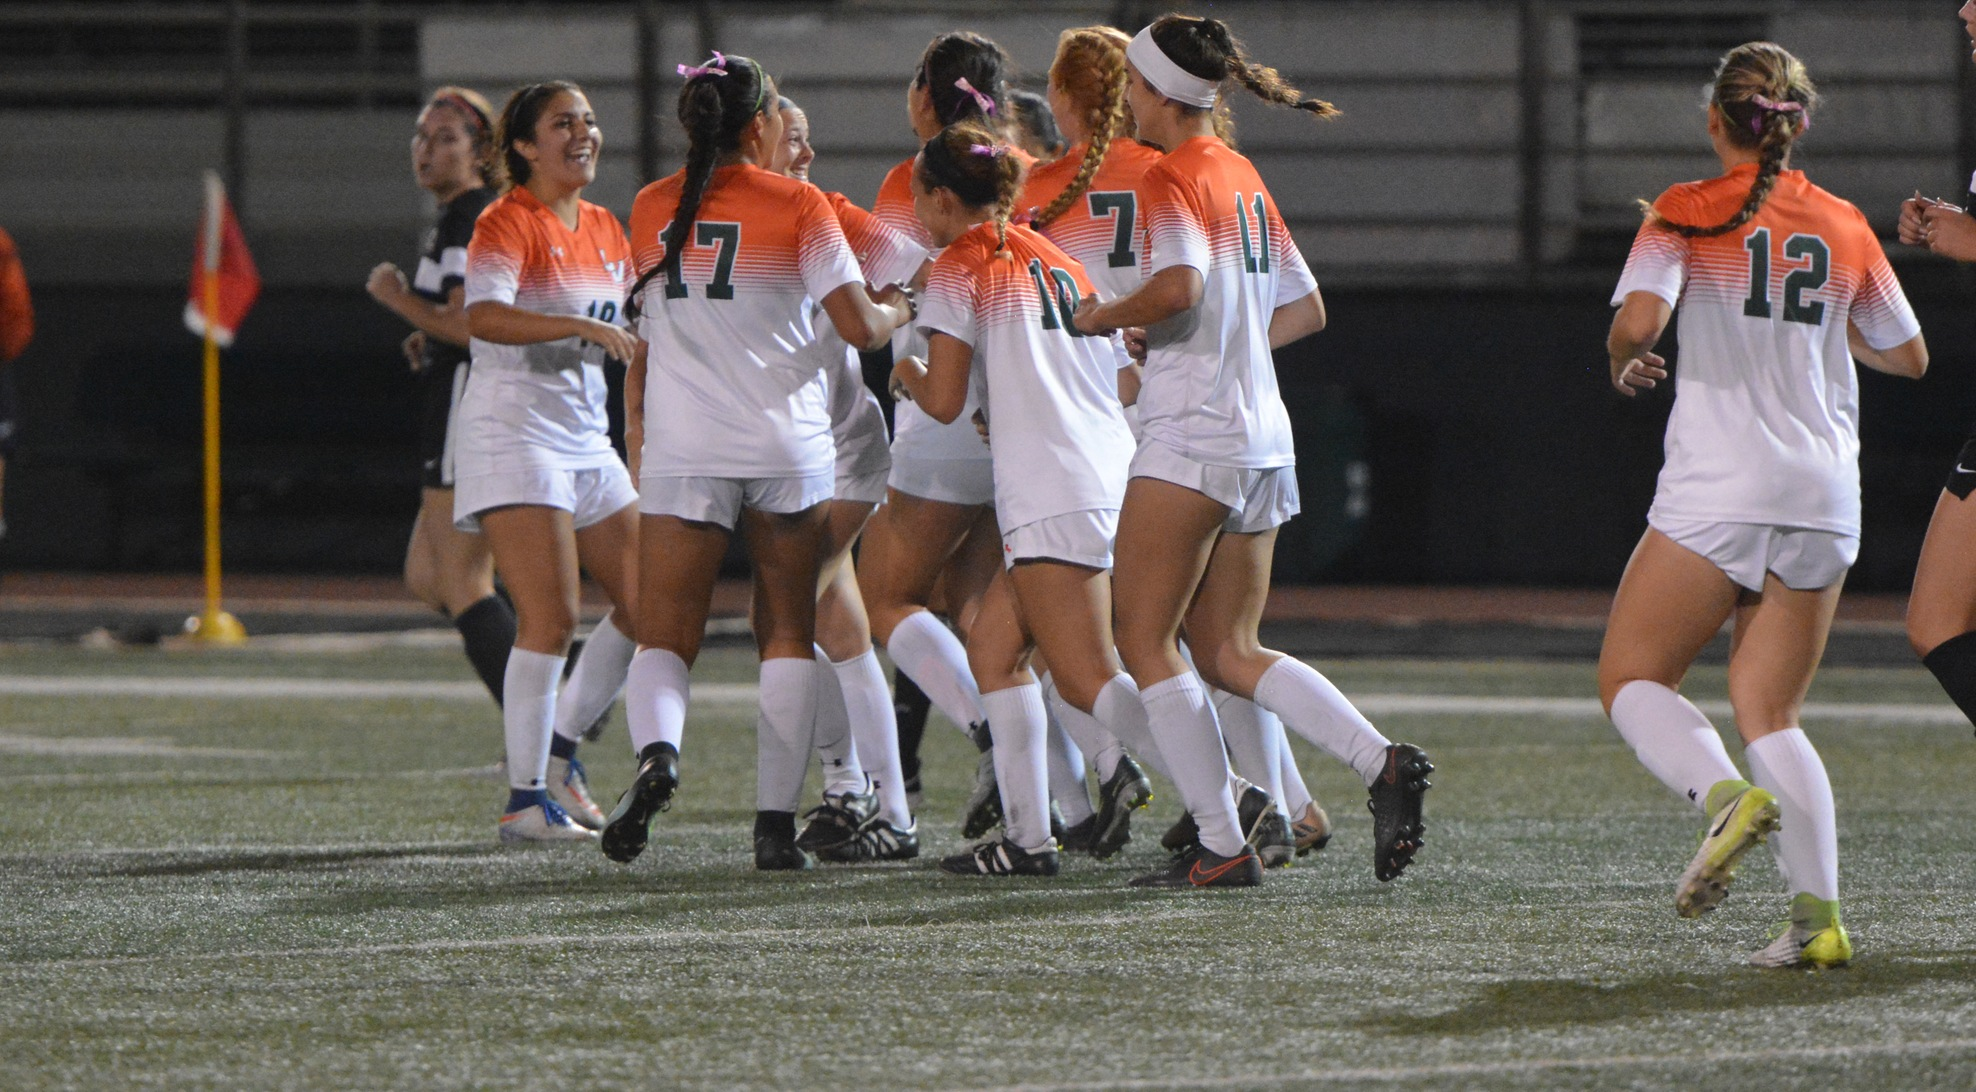 Women's Soccer beats Sagehens, moves into 2nd place